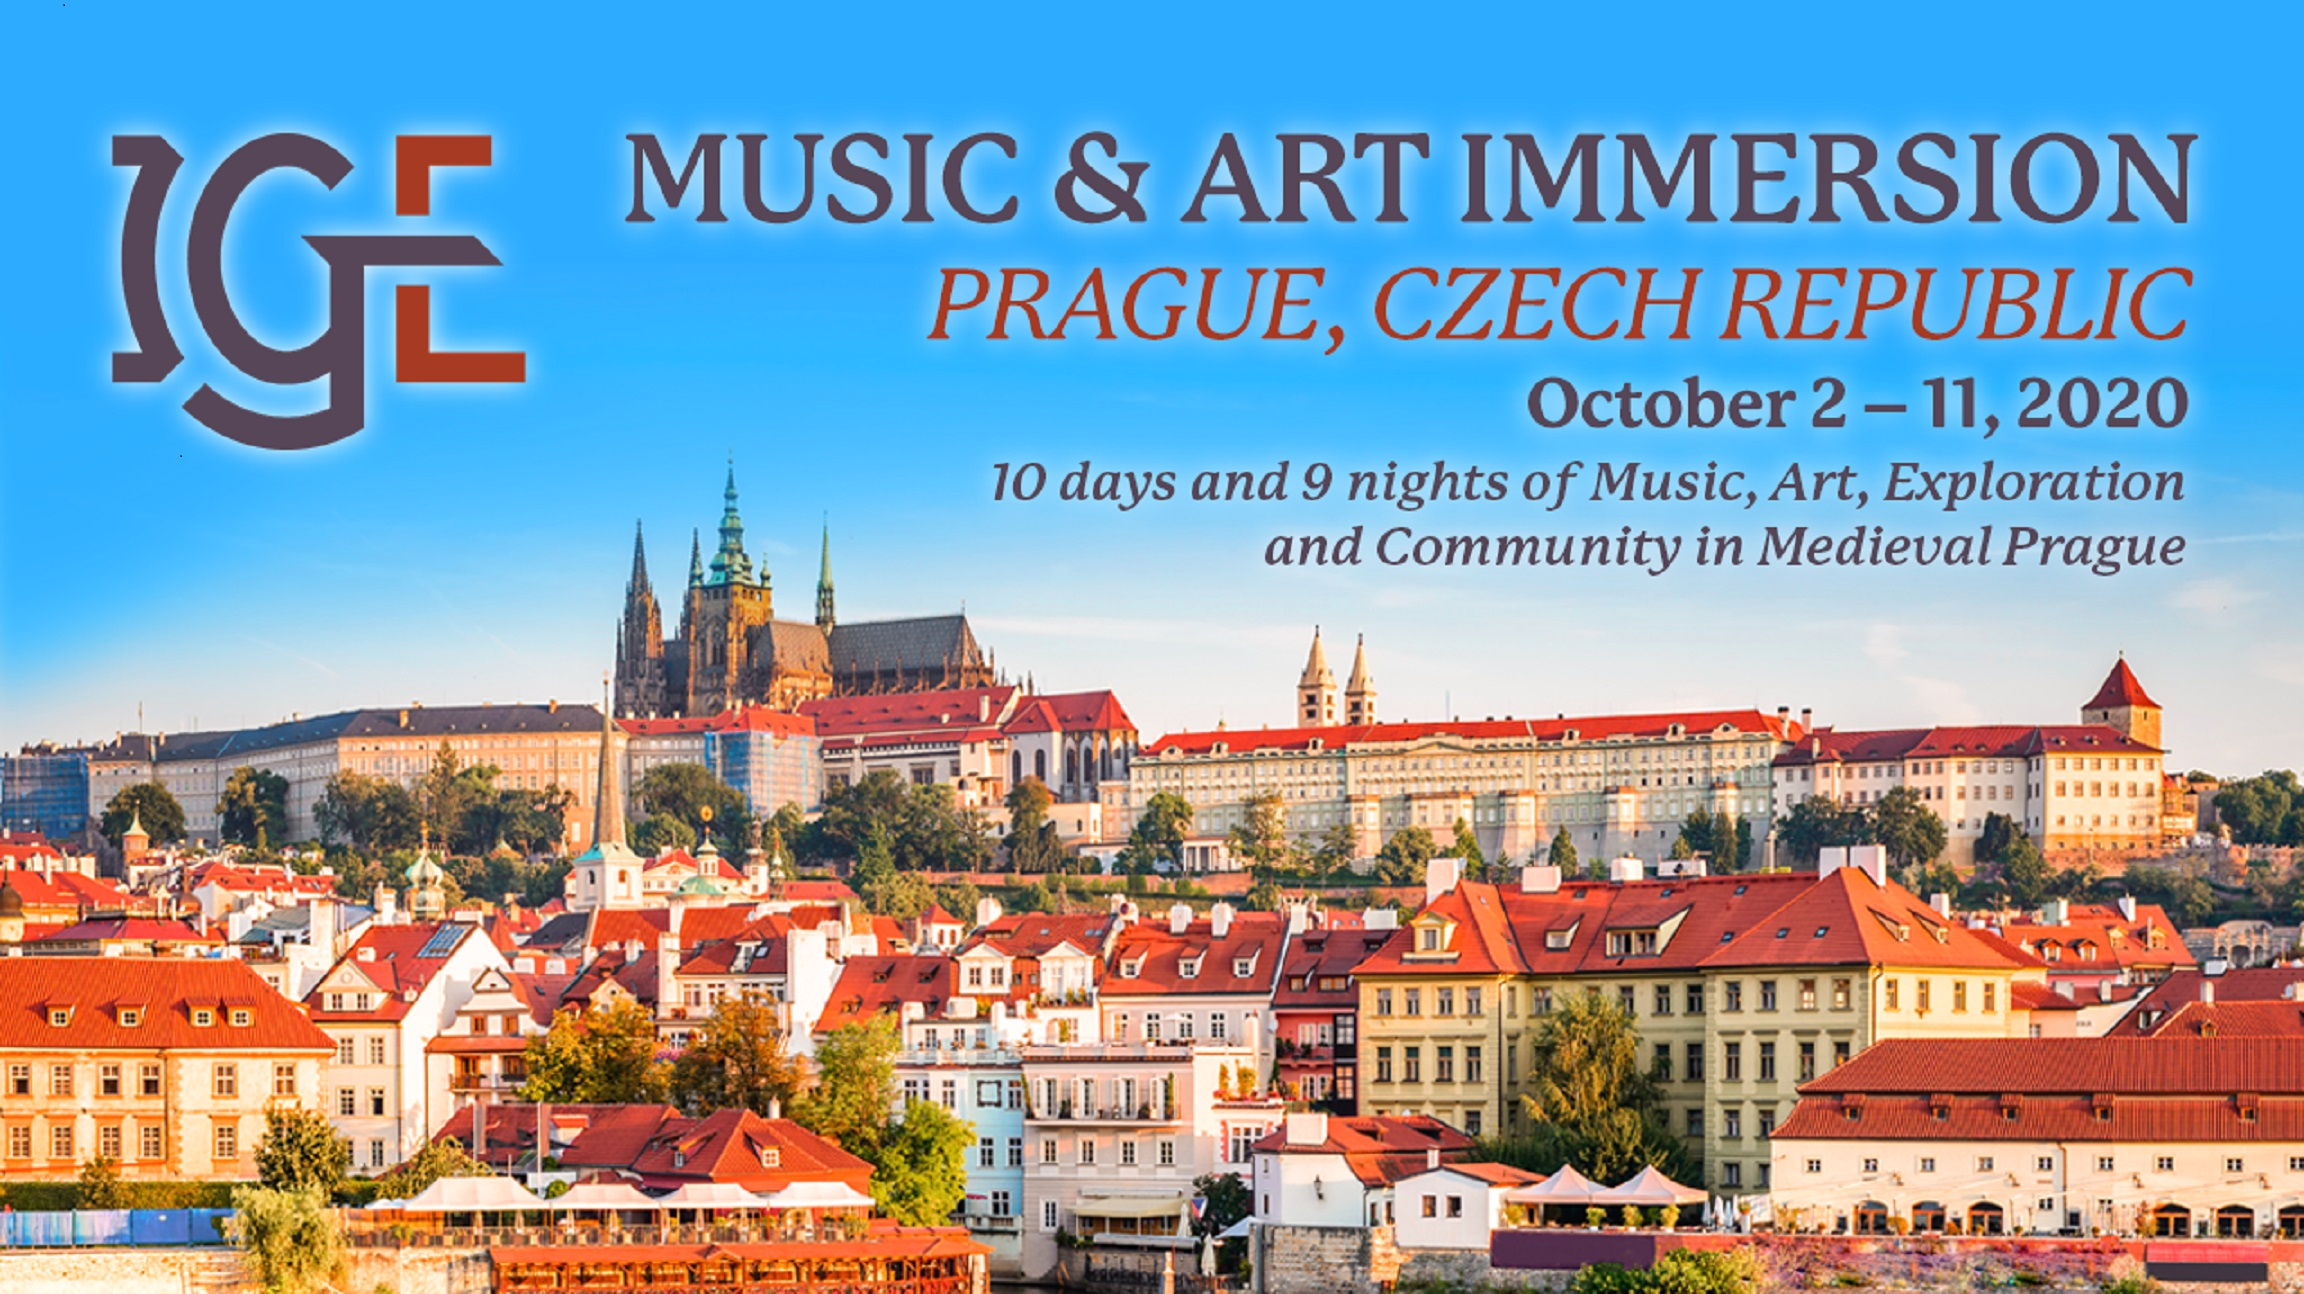 Innovative Giving Enhancement (IGE) Announces 2020 Music and Art Immersion Event in Prague